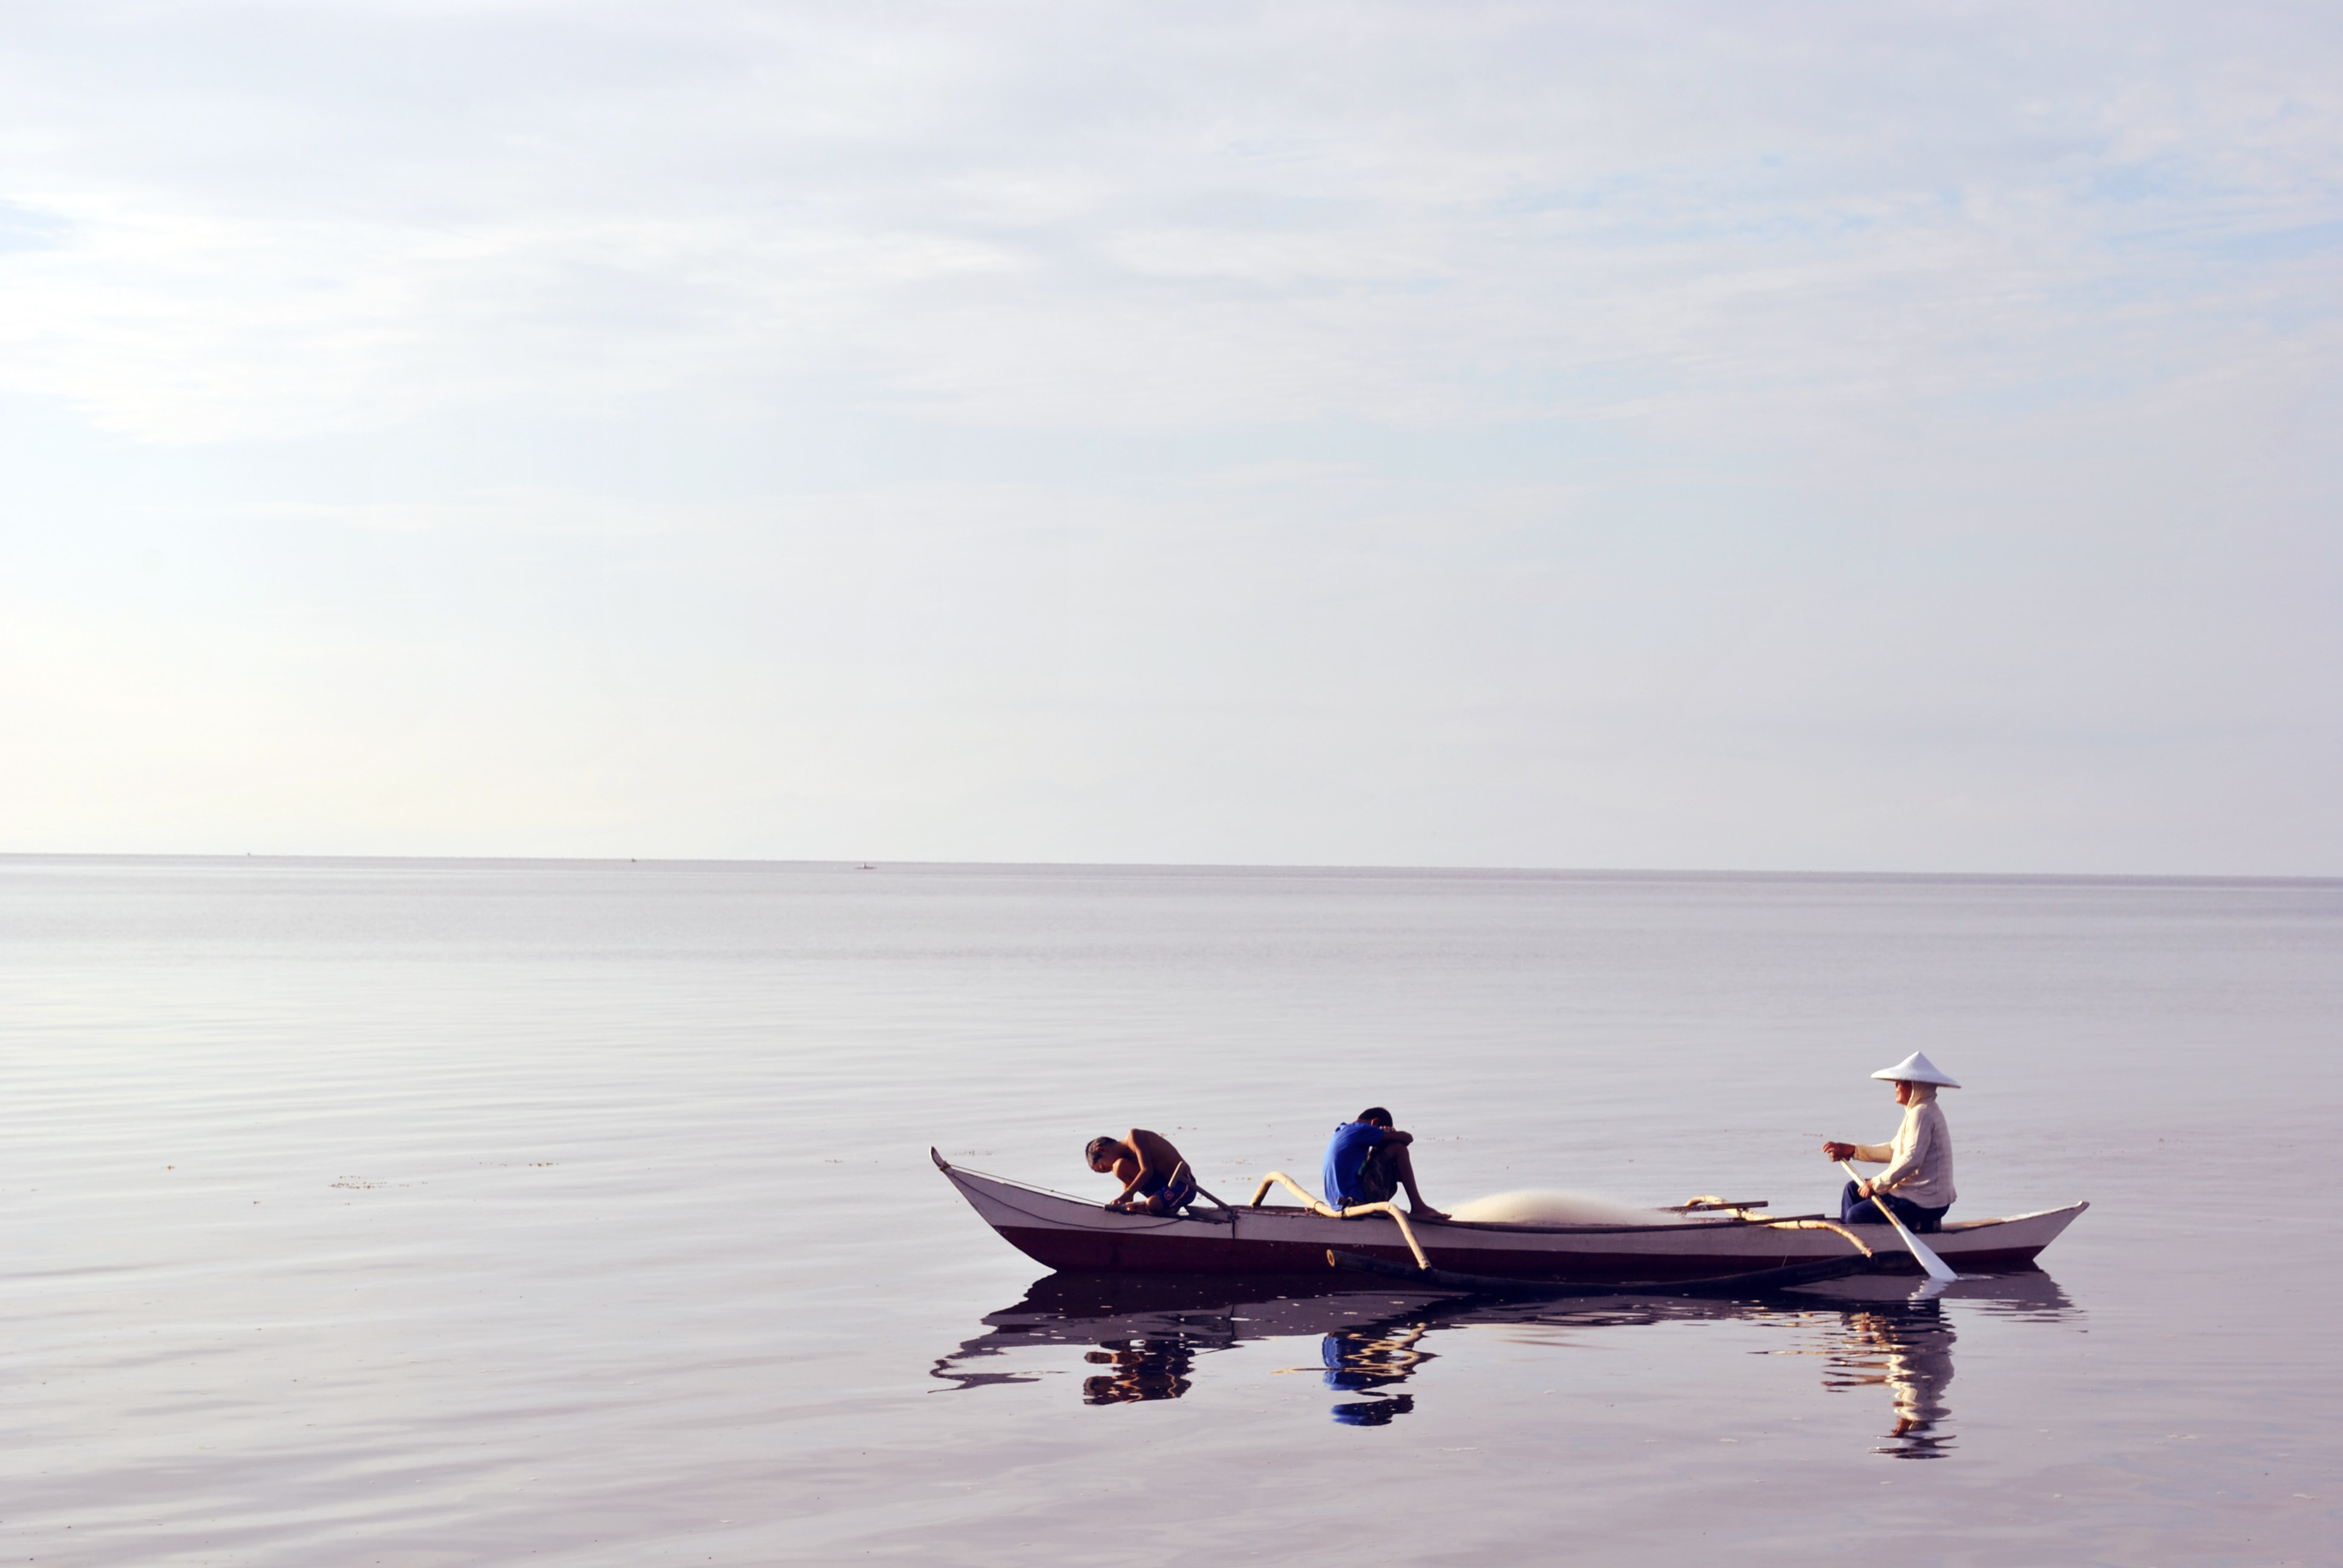 Two kids and a woman on a canoe in the sea in Merida